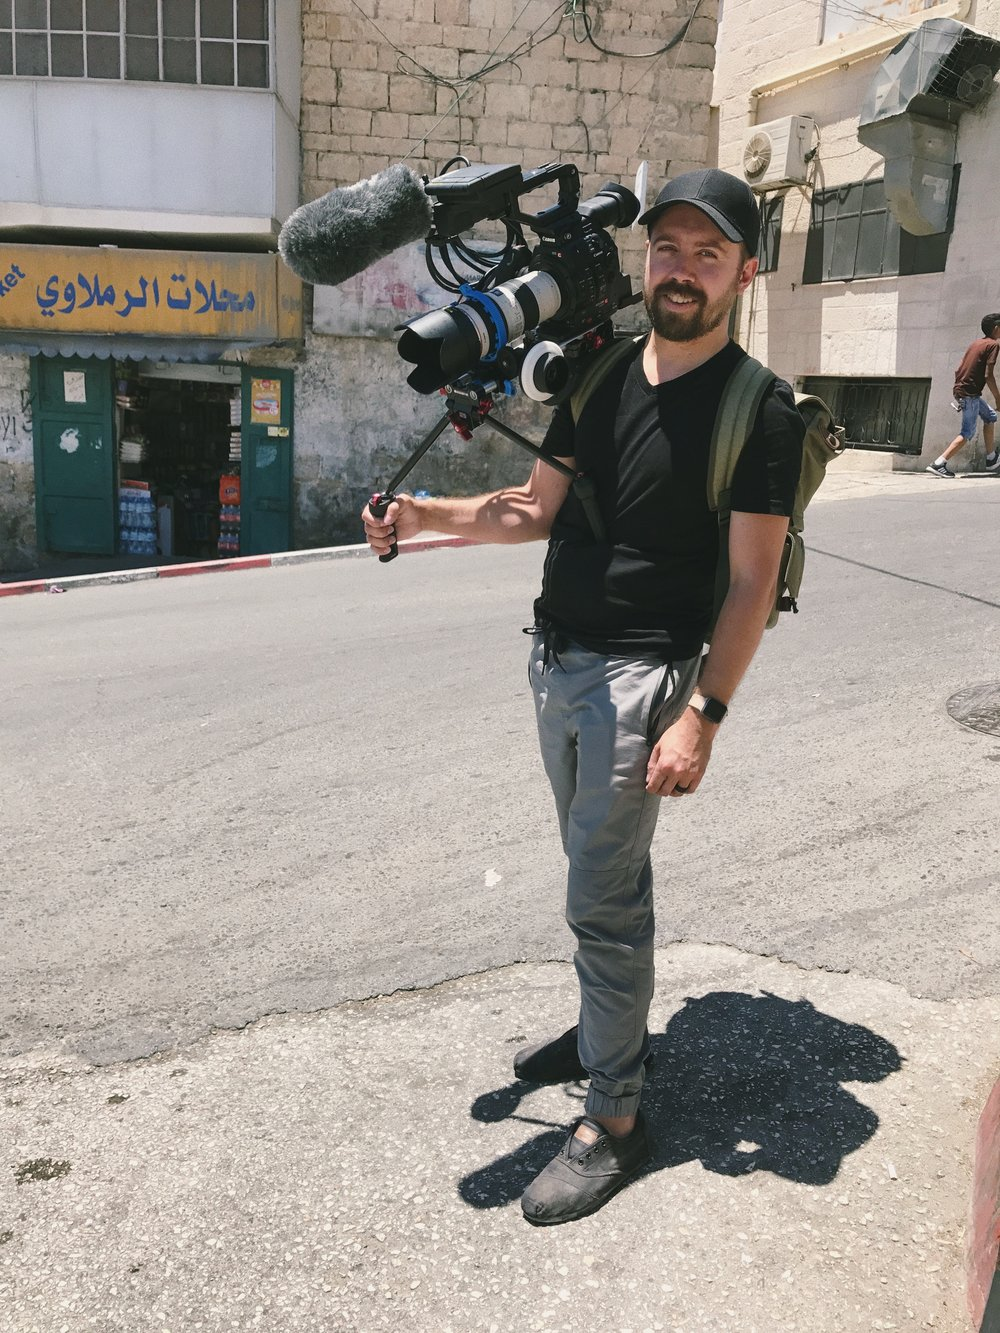 That's me in Bethlehem in 2017, filming for an upcoming documentary project on Palestinians in the West Bank.